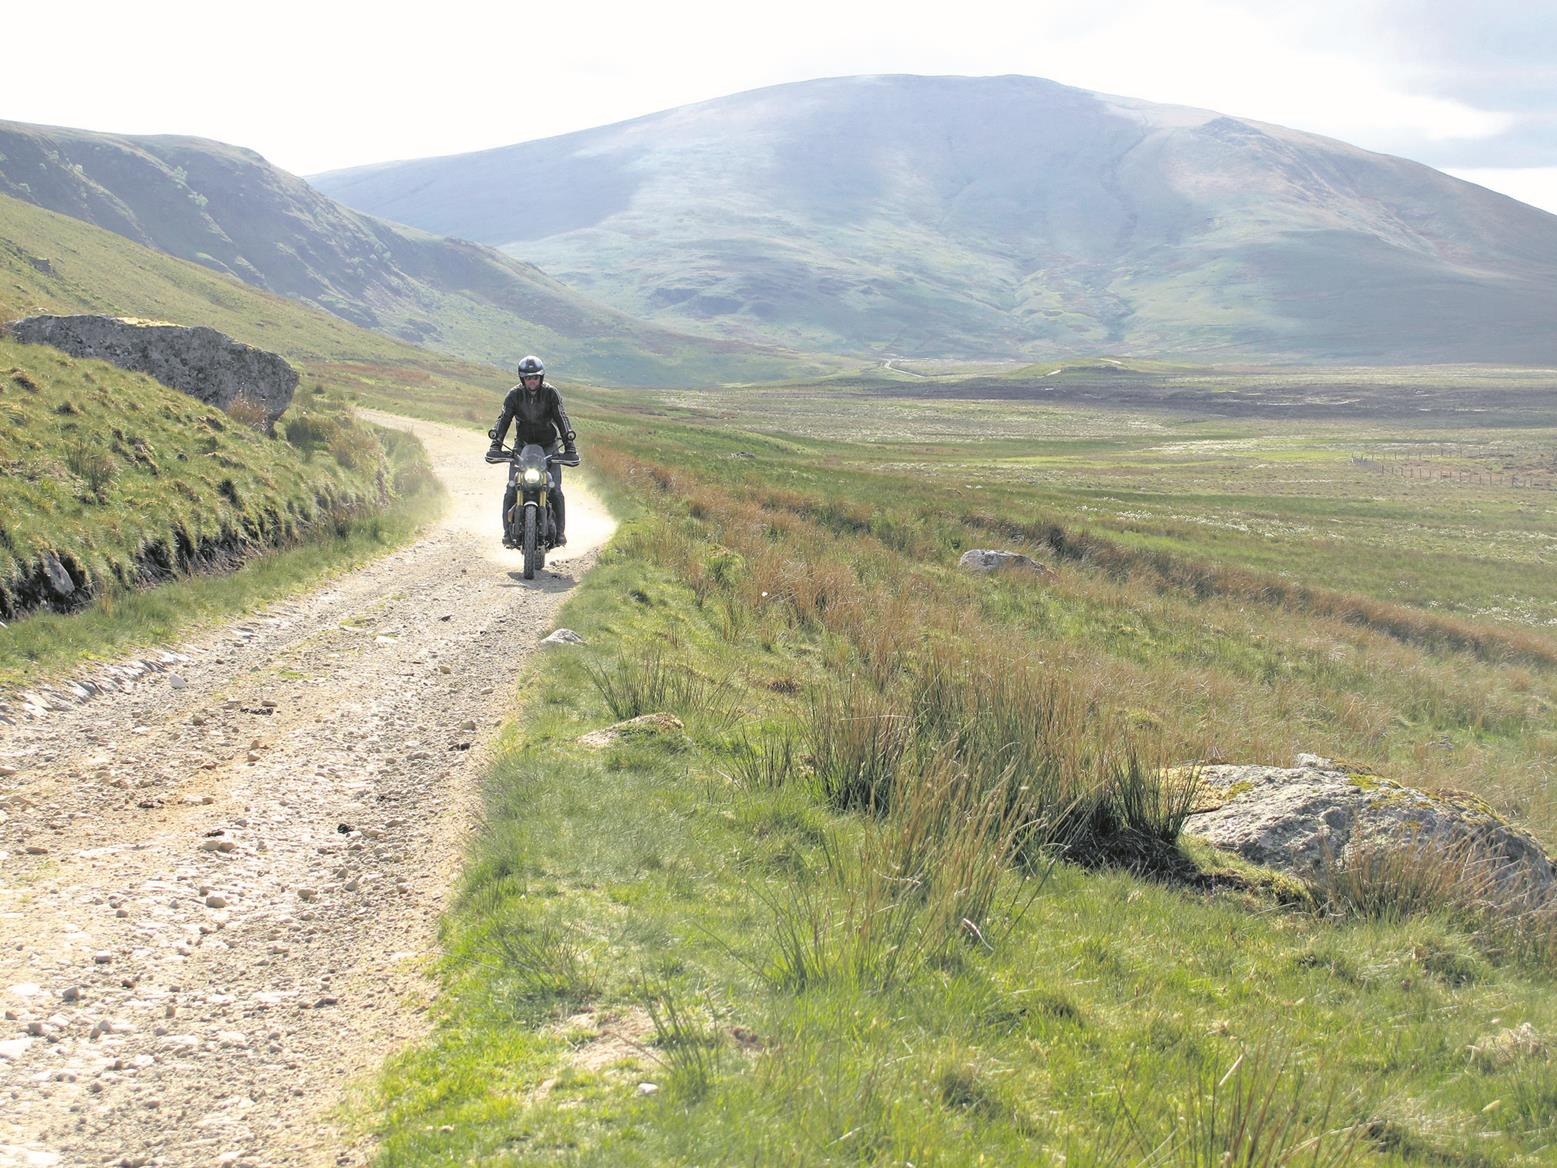 Riding the Triumph Scrambler 1200 XE off-road